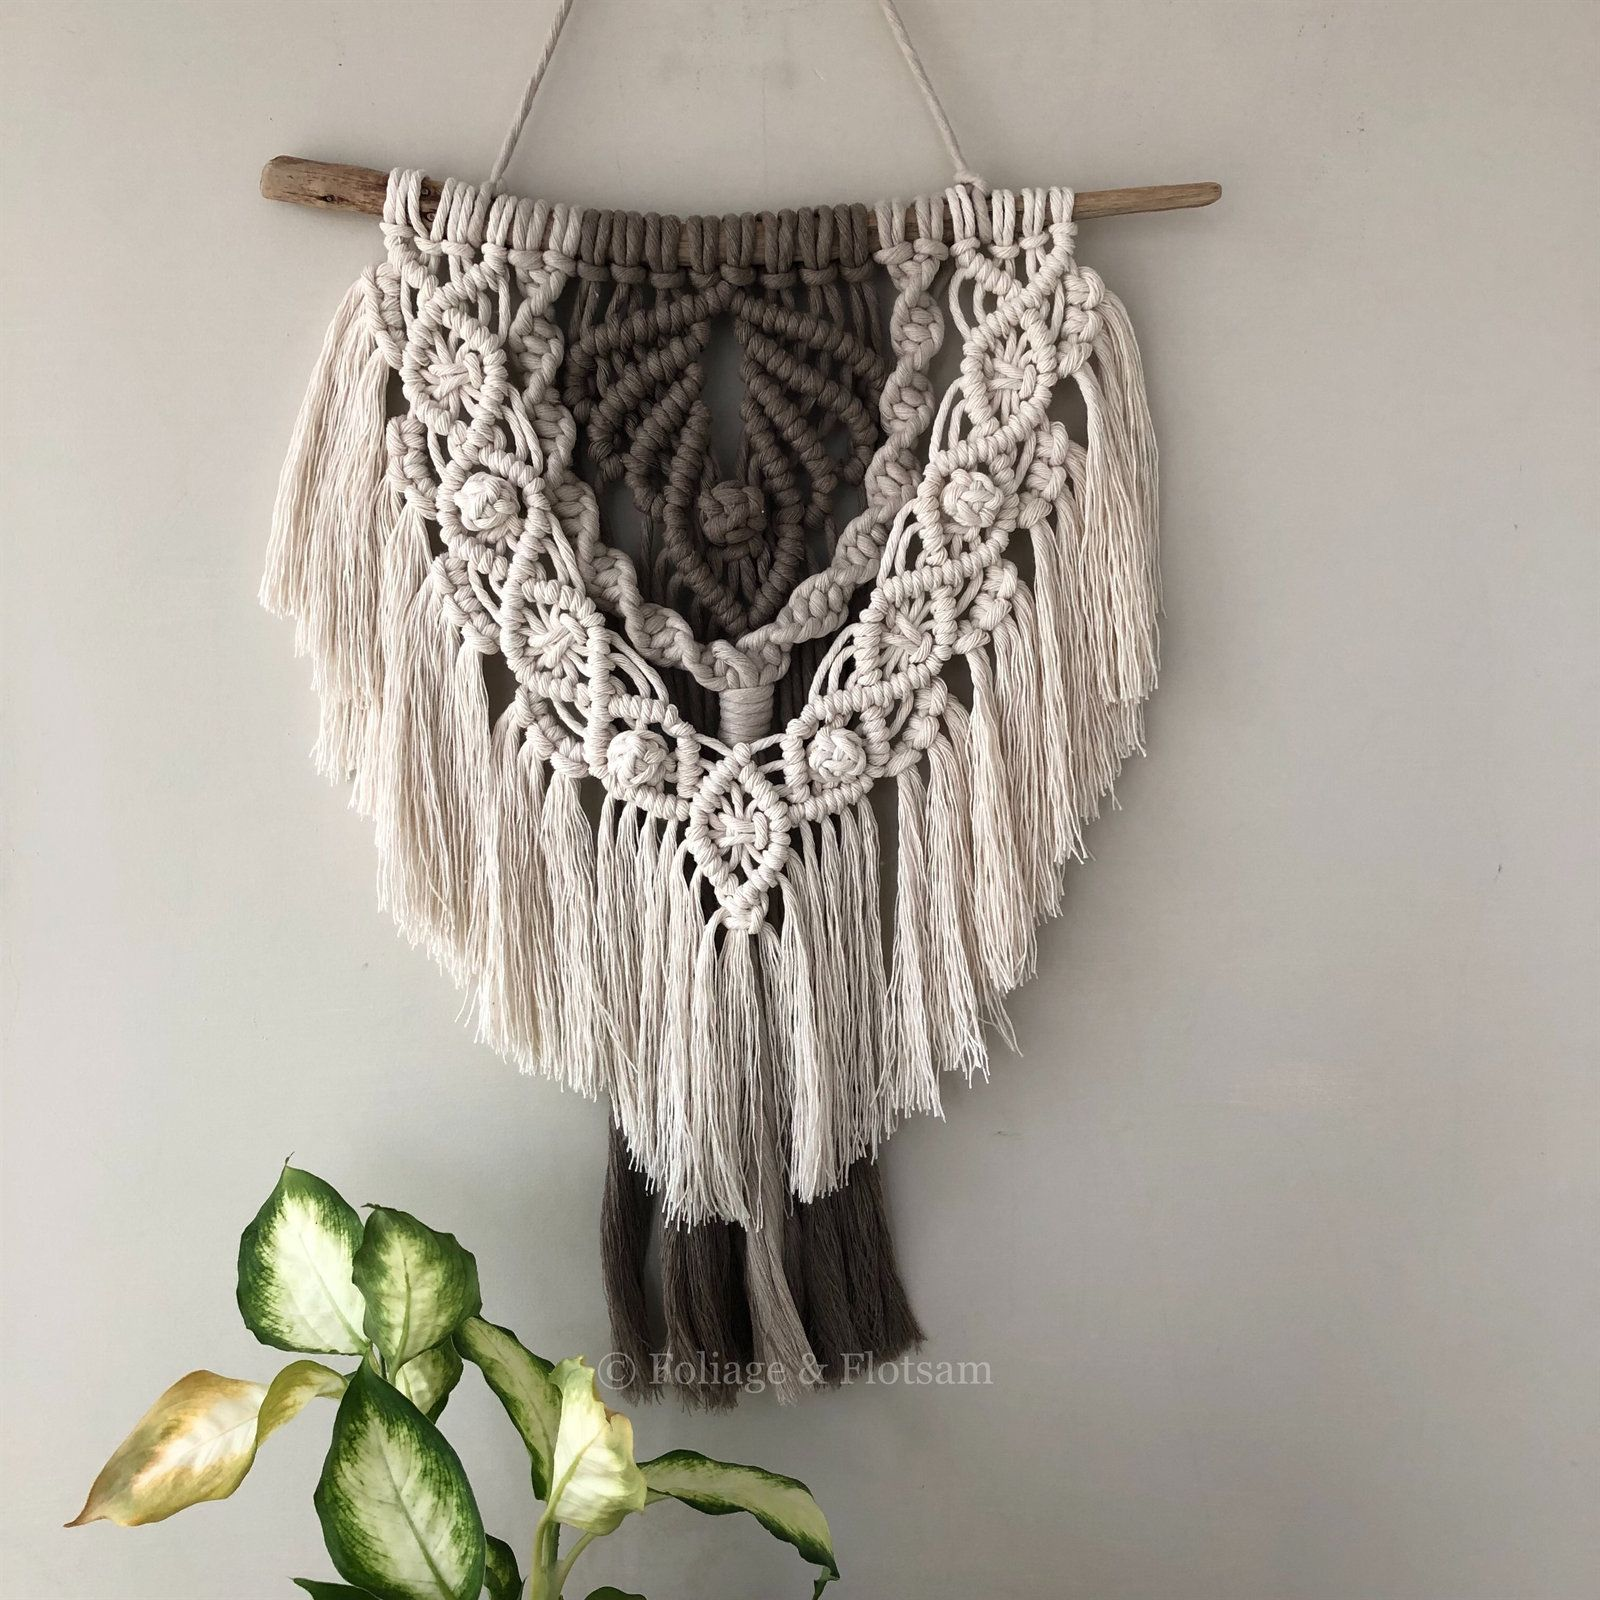 Macrame wall hanging. coloured macrame. bohemian wall decor with driftwood, small size